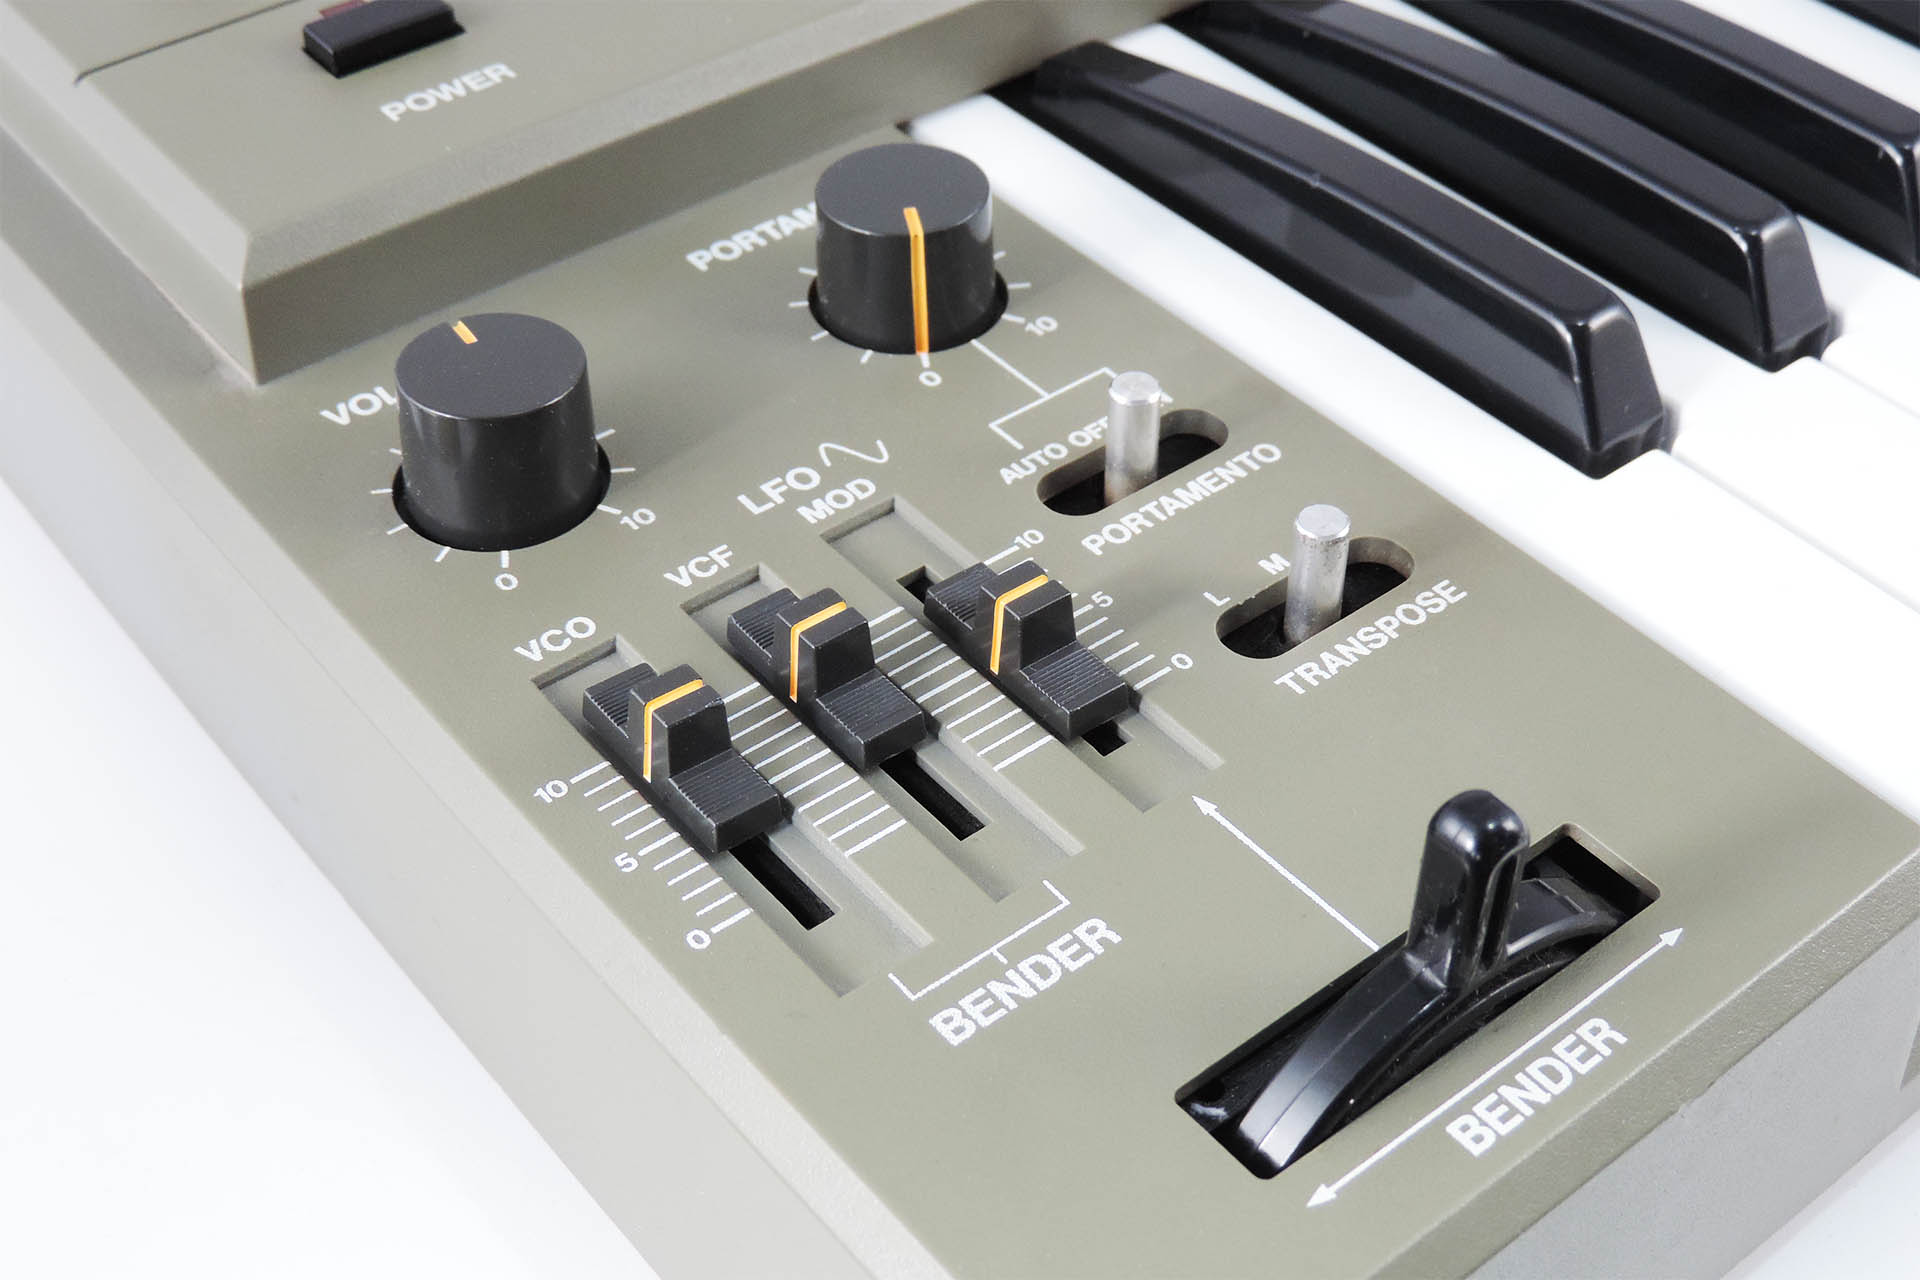 Roland SH-101 serviced at Plasma Music